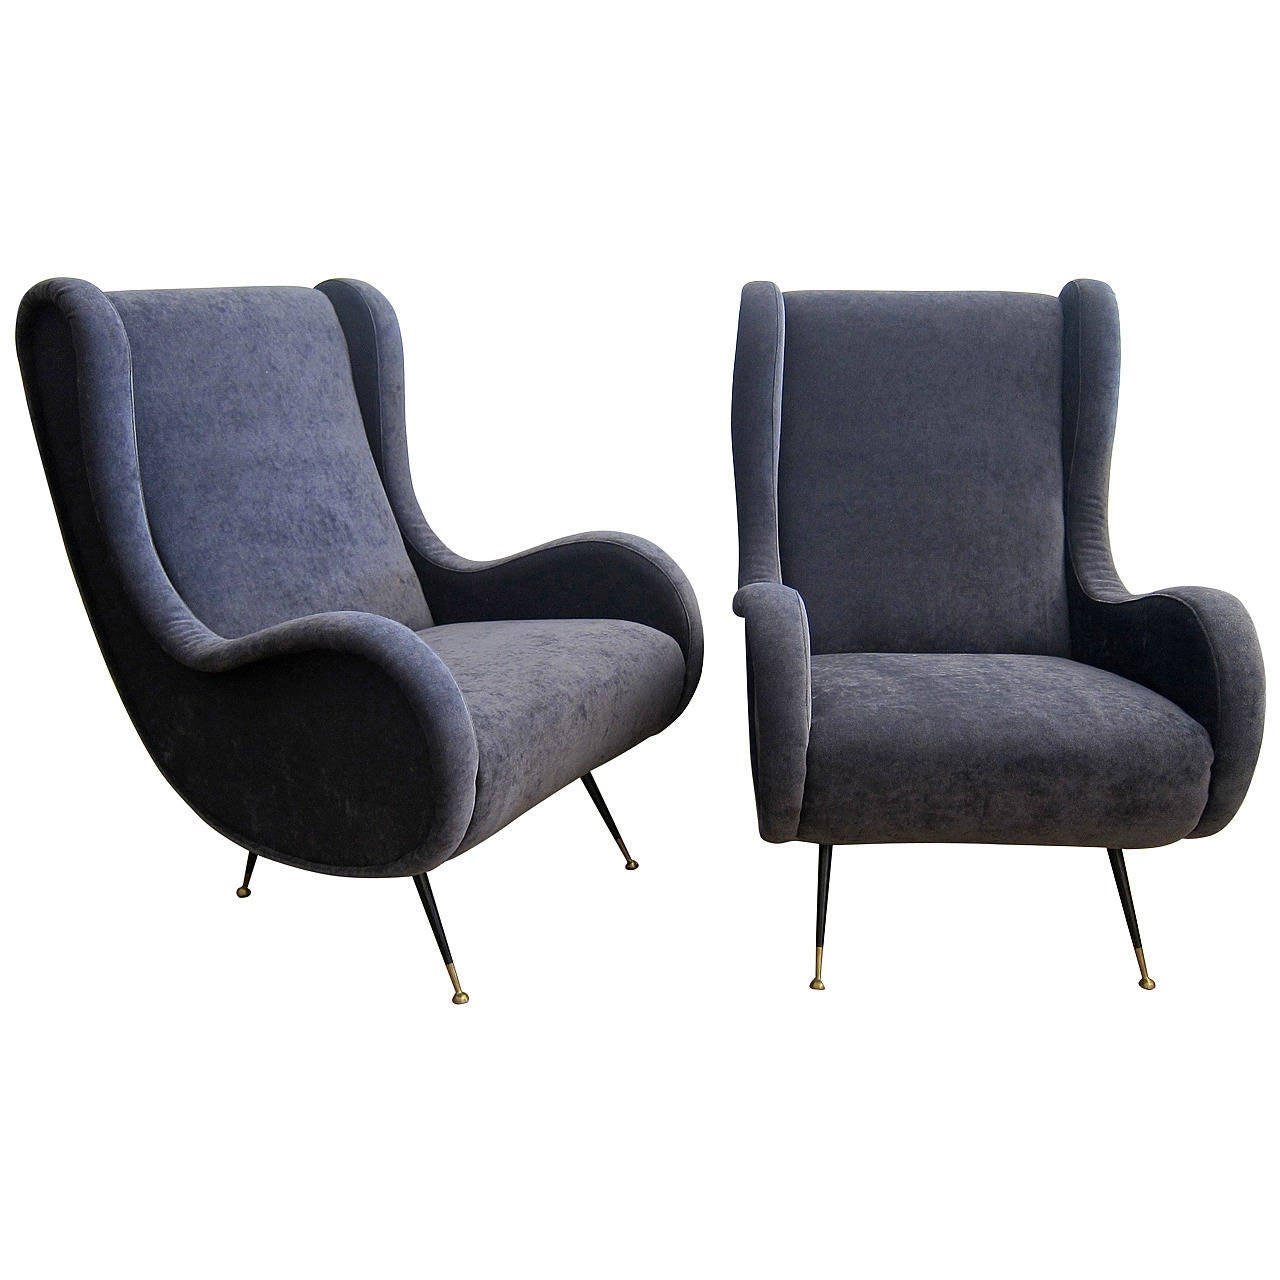 Marco zanuso style lounge chairs italy 1950s at 1stdibs for 1950s chair styles